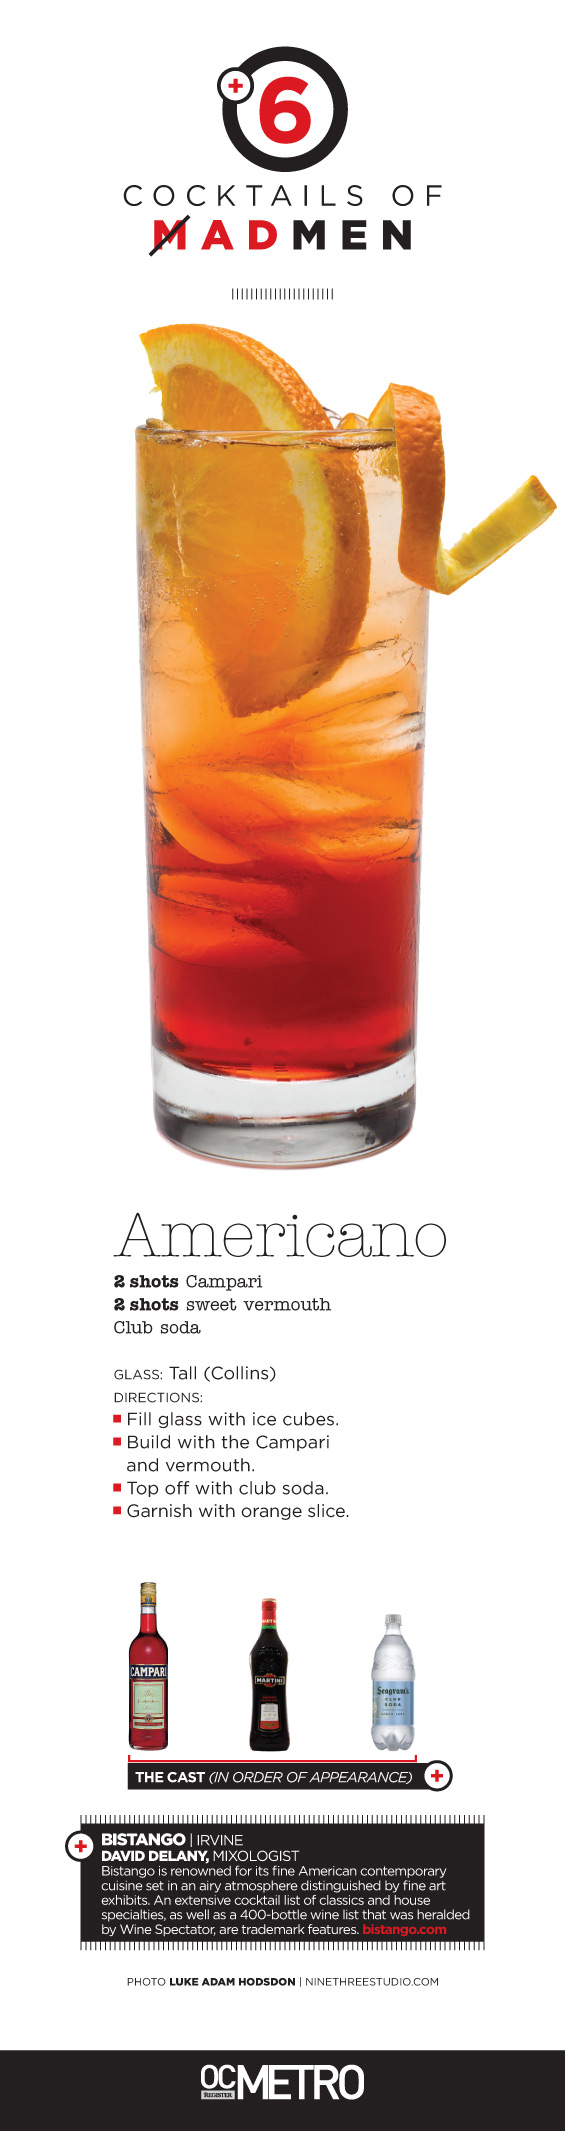 Americano Recipe classic cocktail recipe made with campari, sweet vermouth and club soda by Bistango in Irvine, CA. OC Register Metro #magazine Mad Men inspired cover story | #photo by Luke Adam Hodsdon